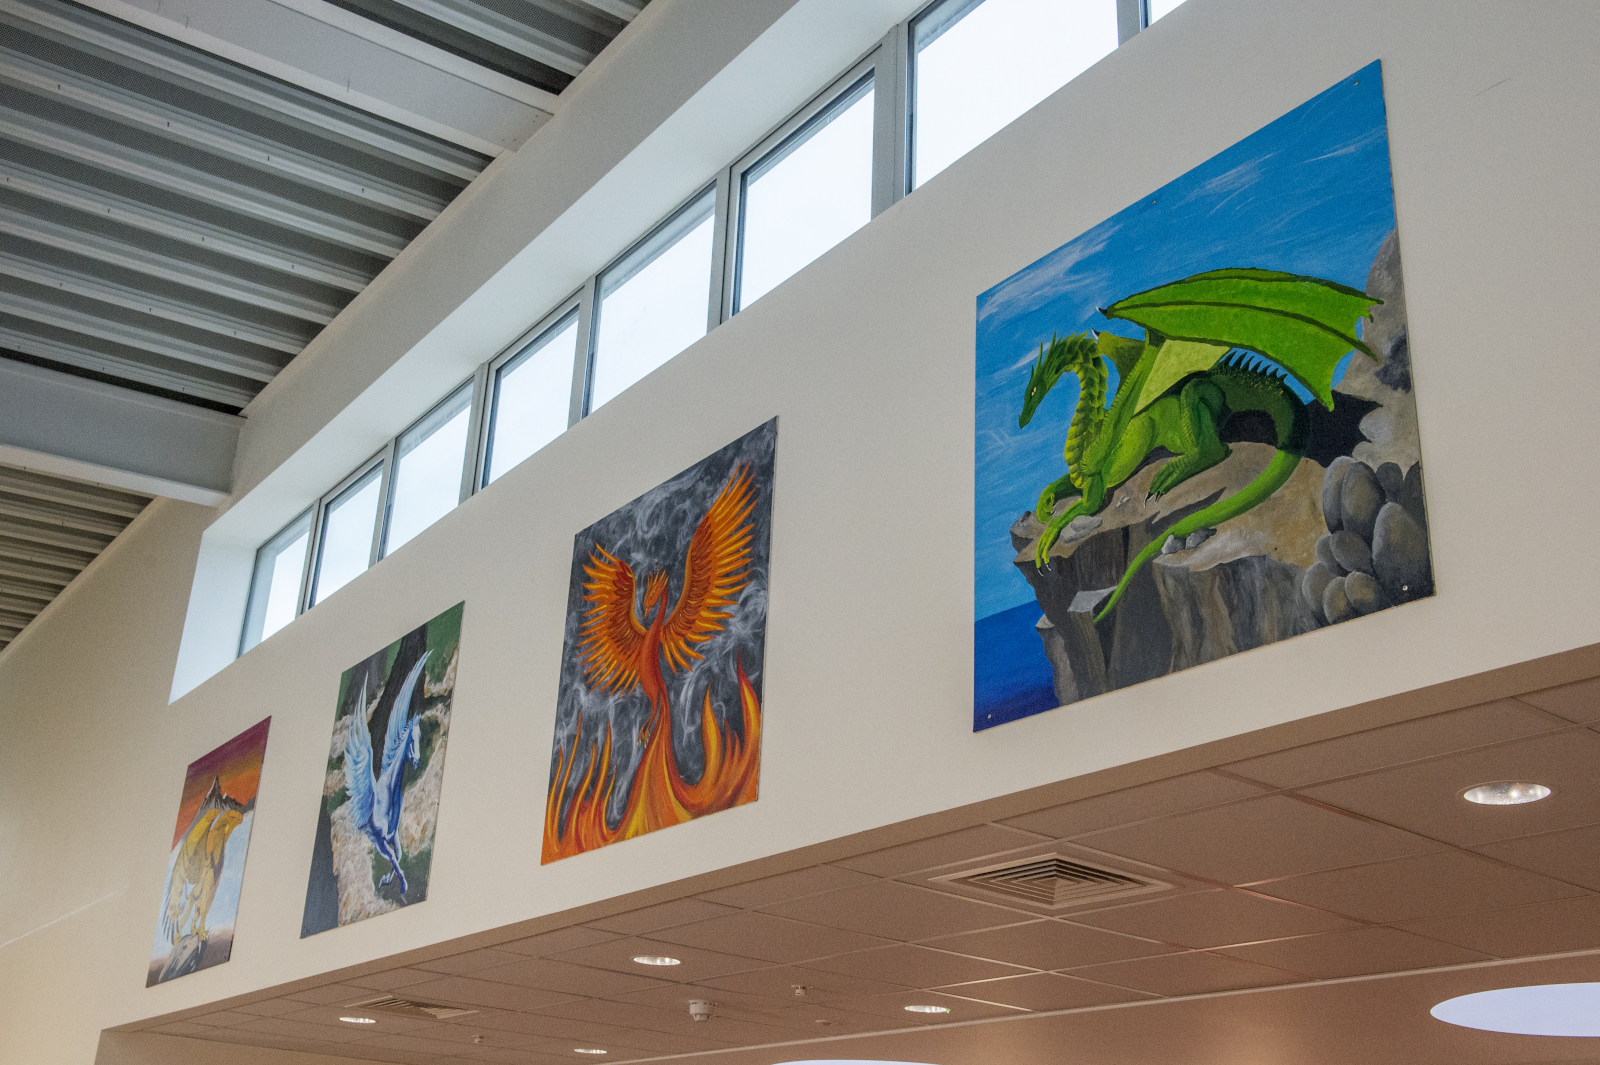 Works of Art created by pupils for the new school